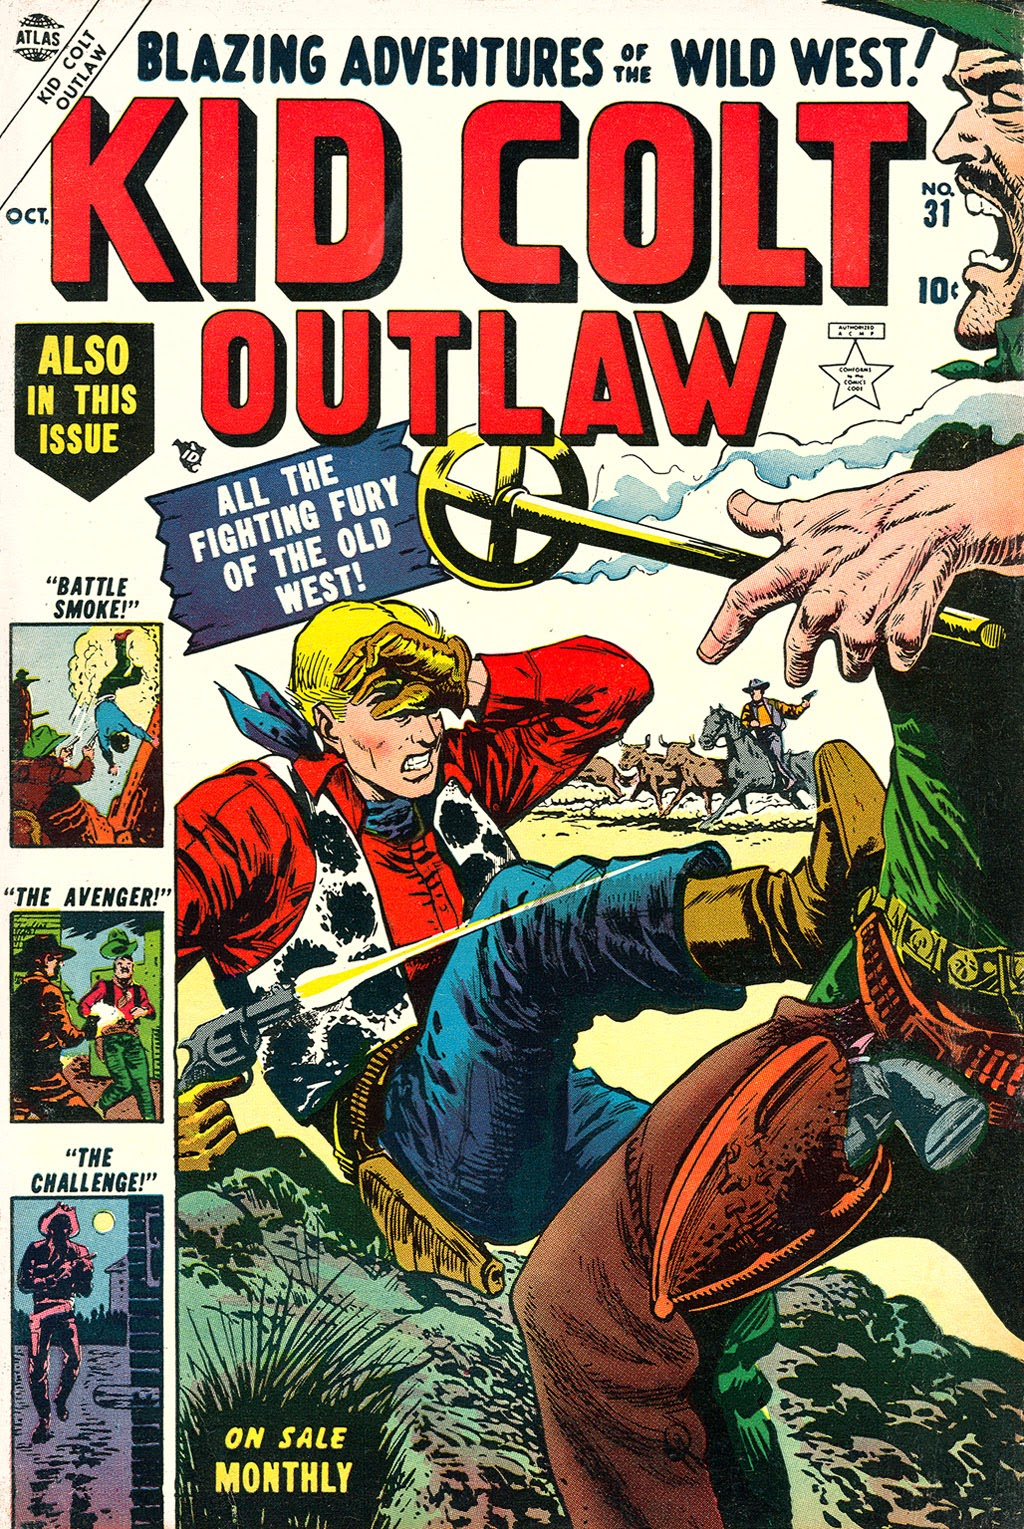 Kid Colt Outlaw issue 31 - Page 1